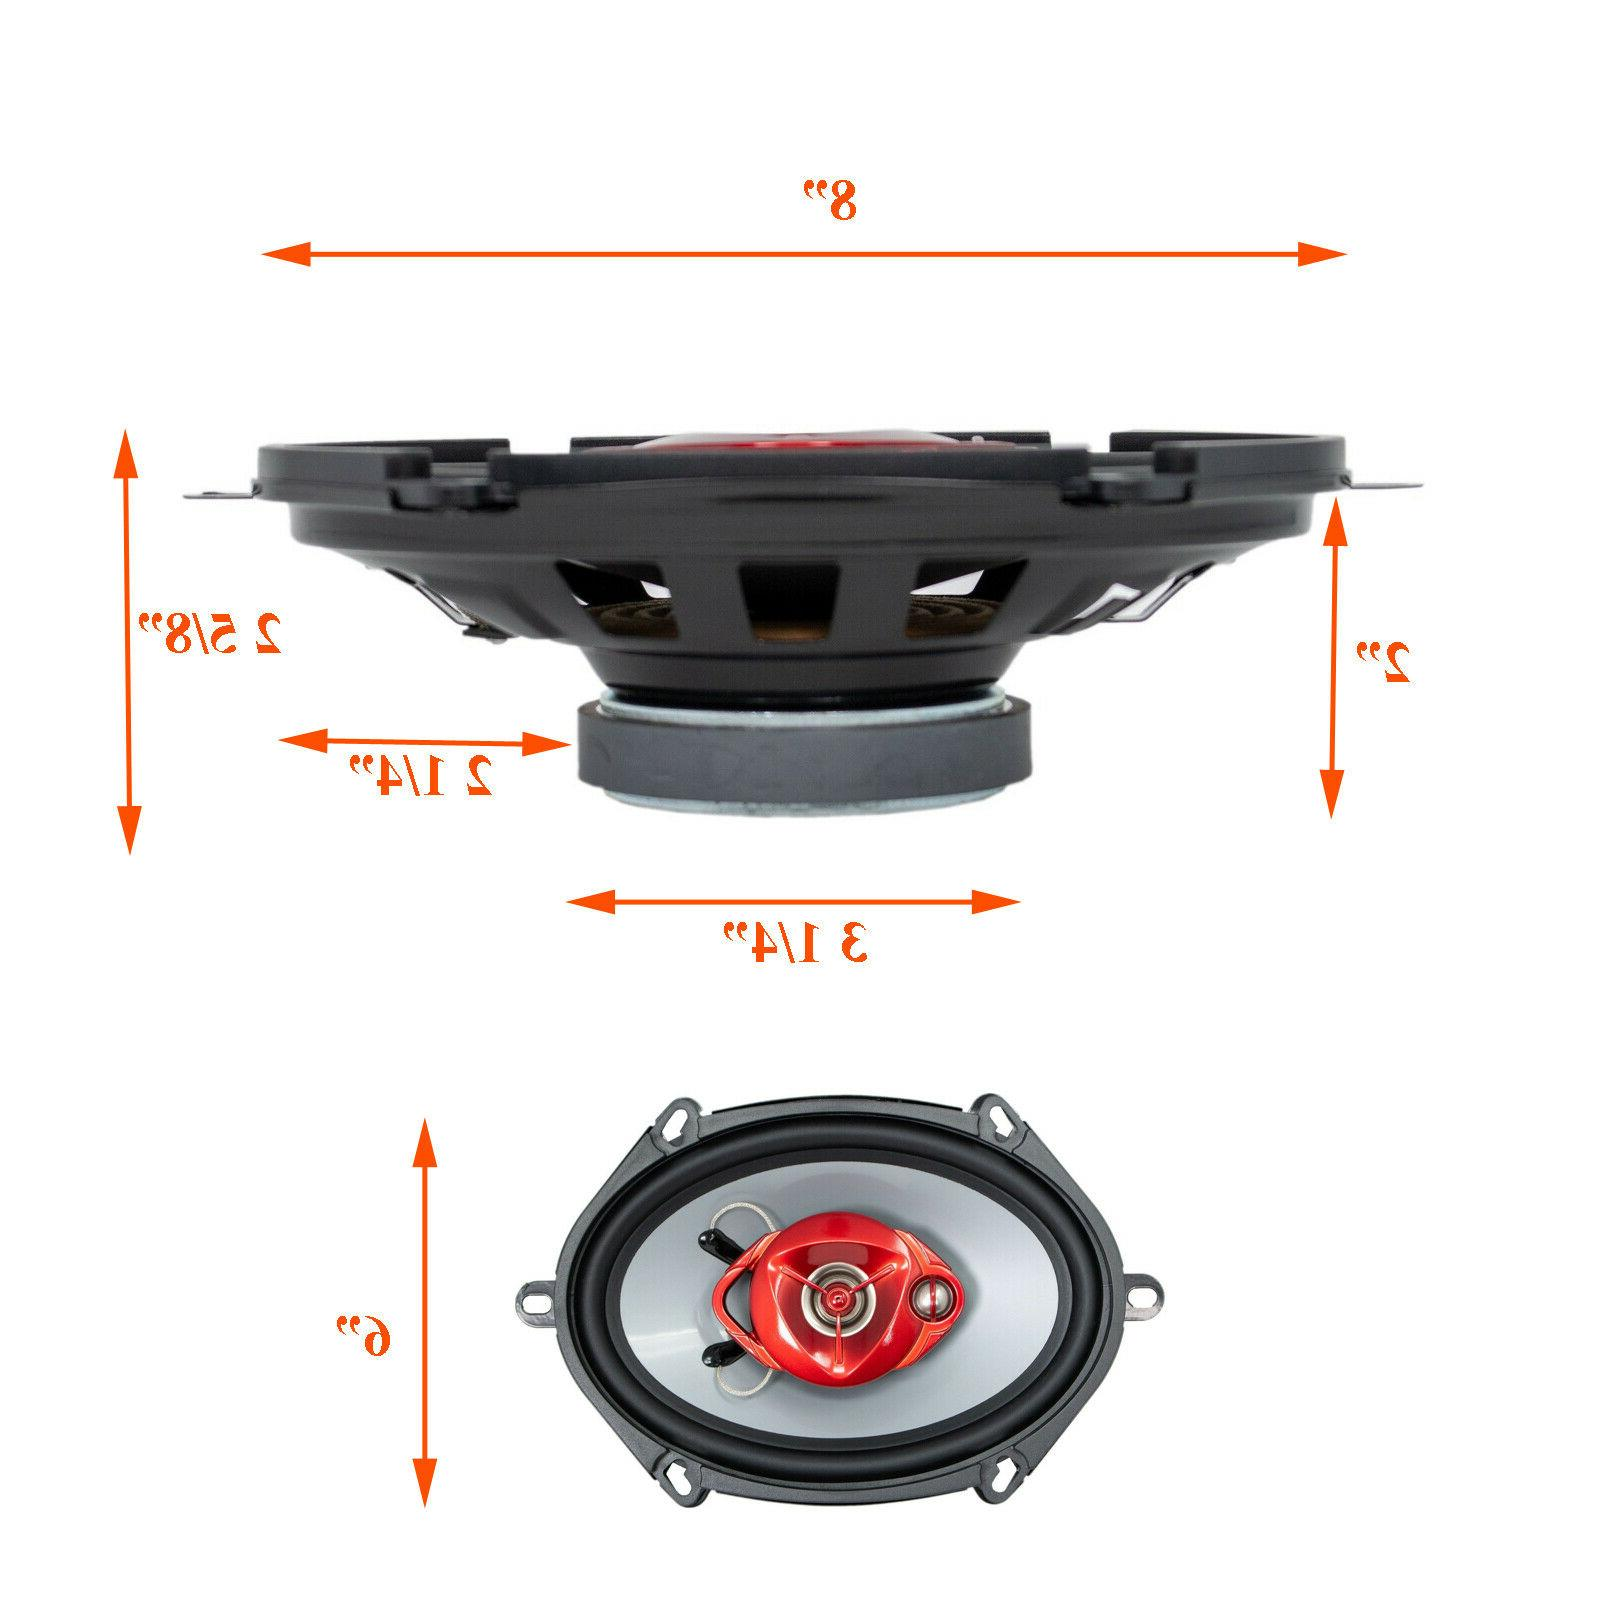 "4x Soundxtreme ST-680 / 6x8"" 700 Coaxial Speakers"